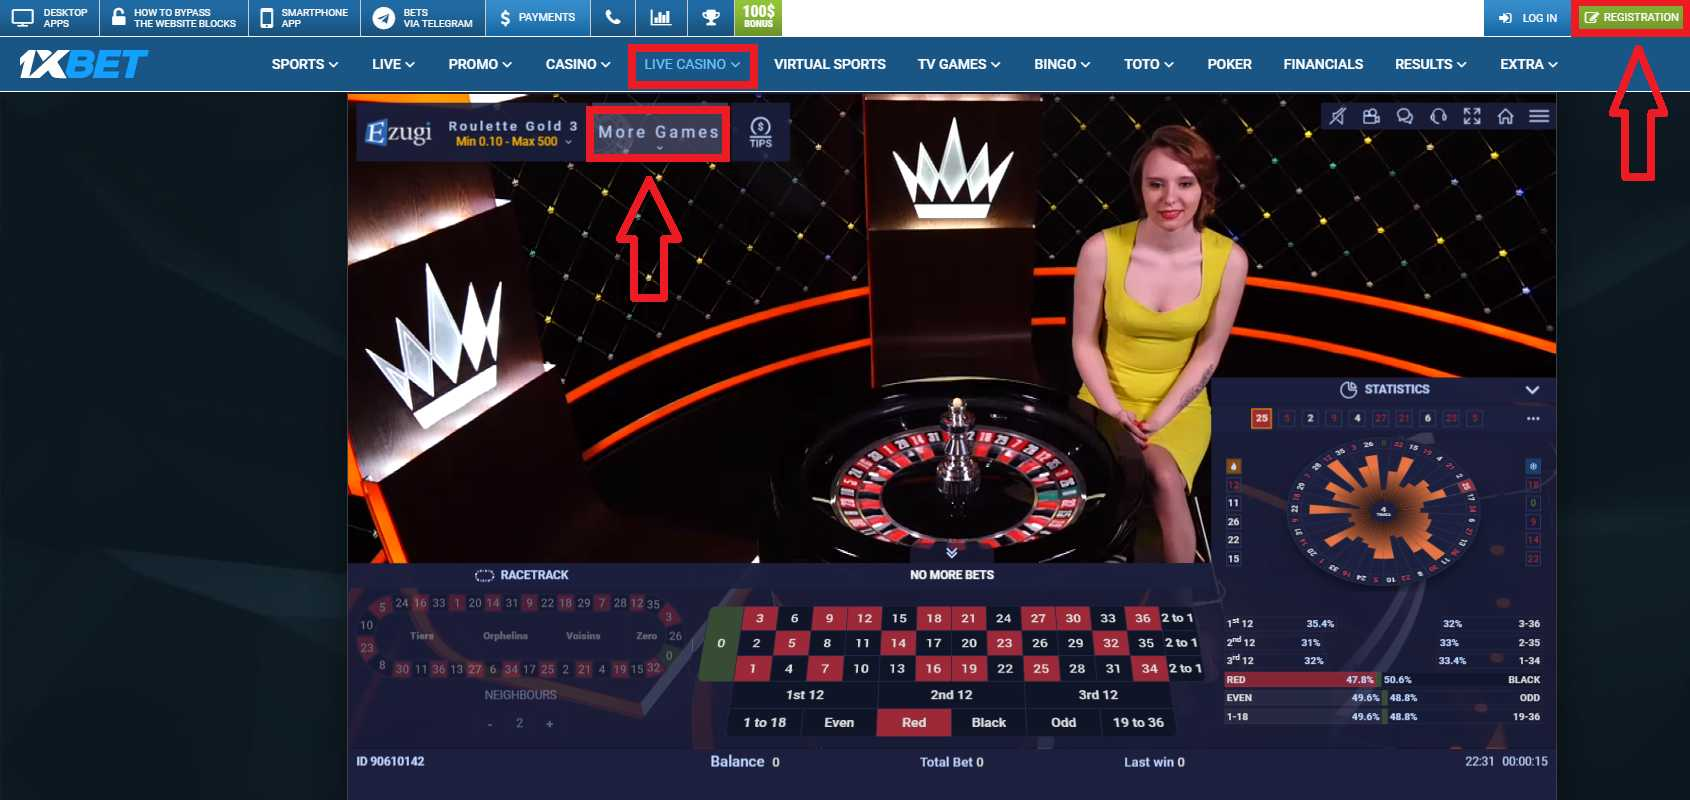 1xBet Blackjack and Other Games in the Mobile Casino